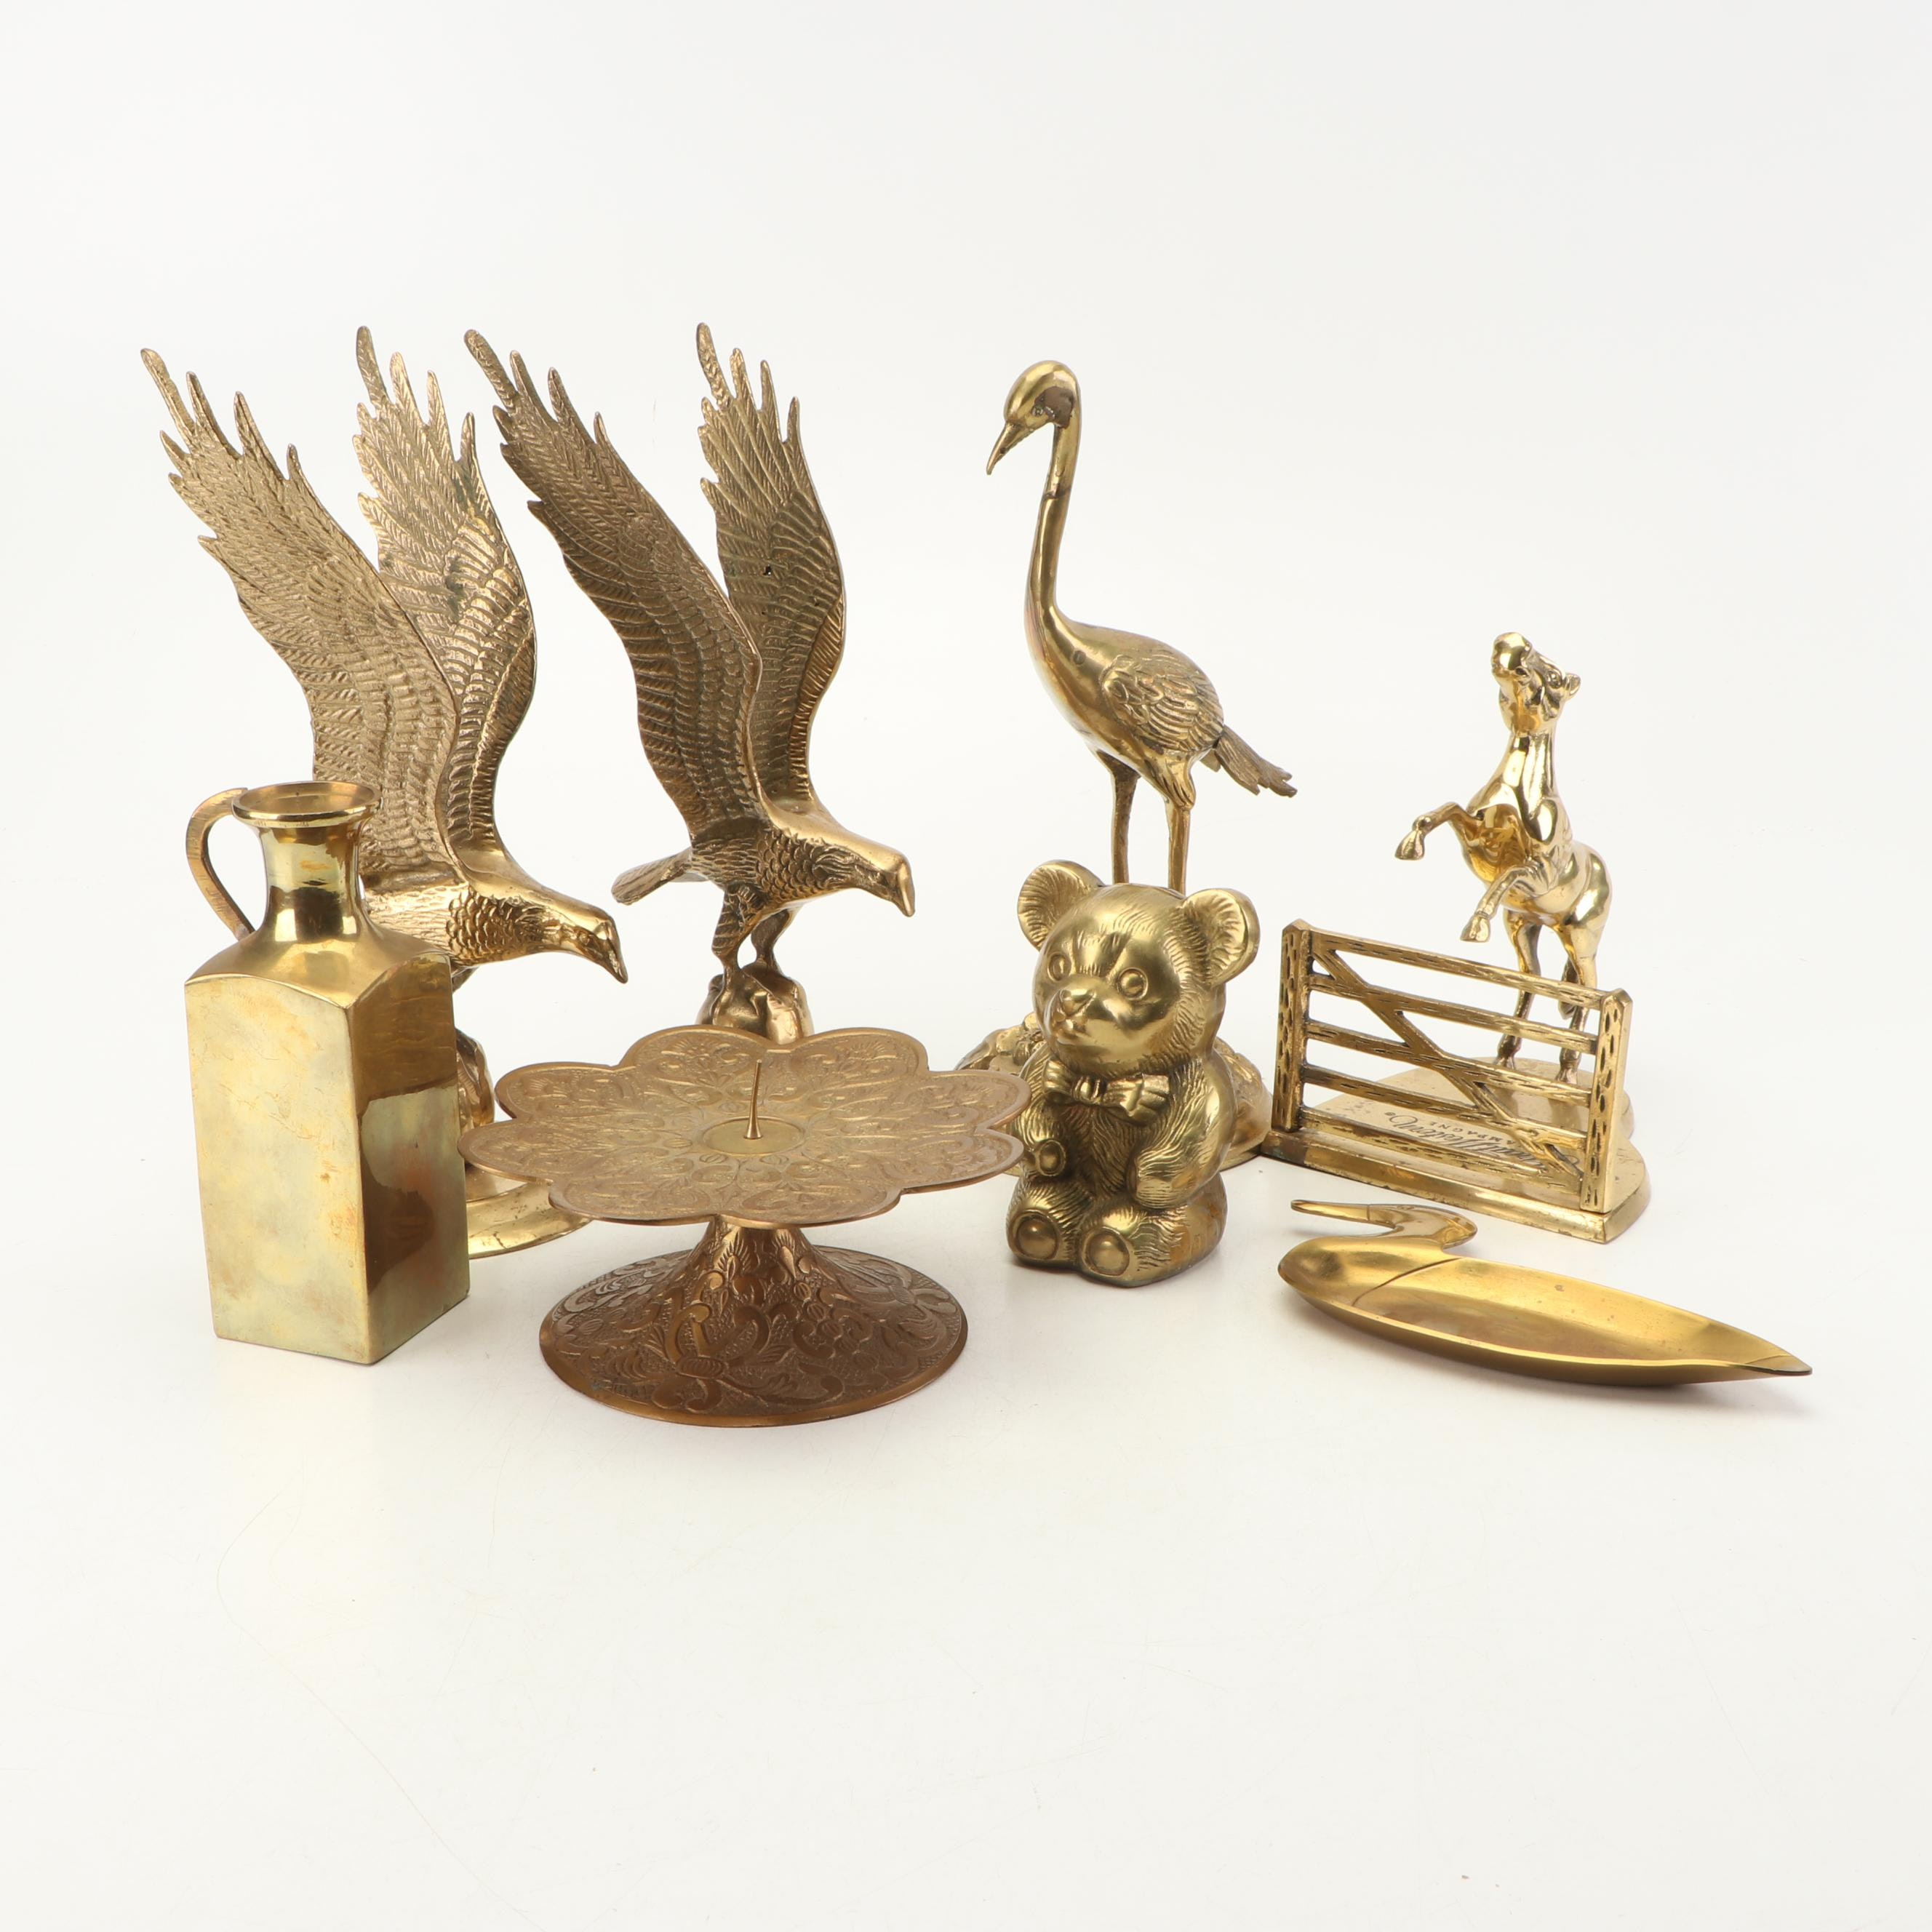 Collection of Brass Figurines and Decor